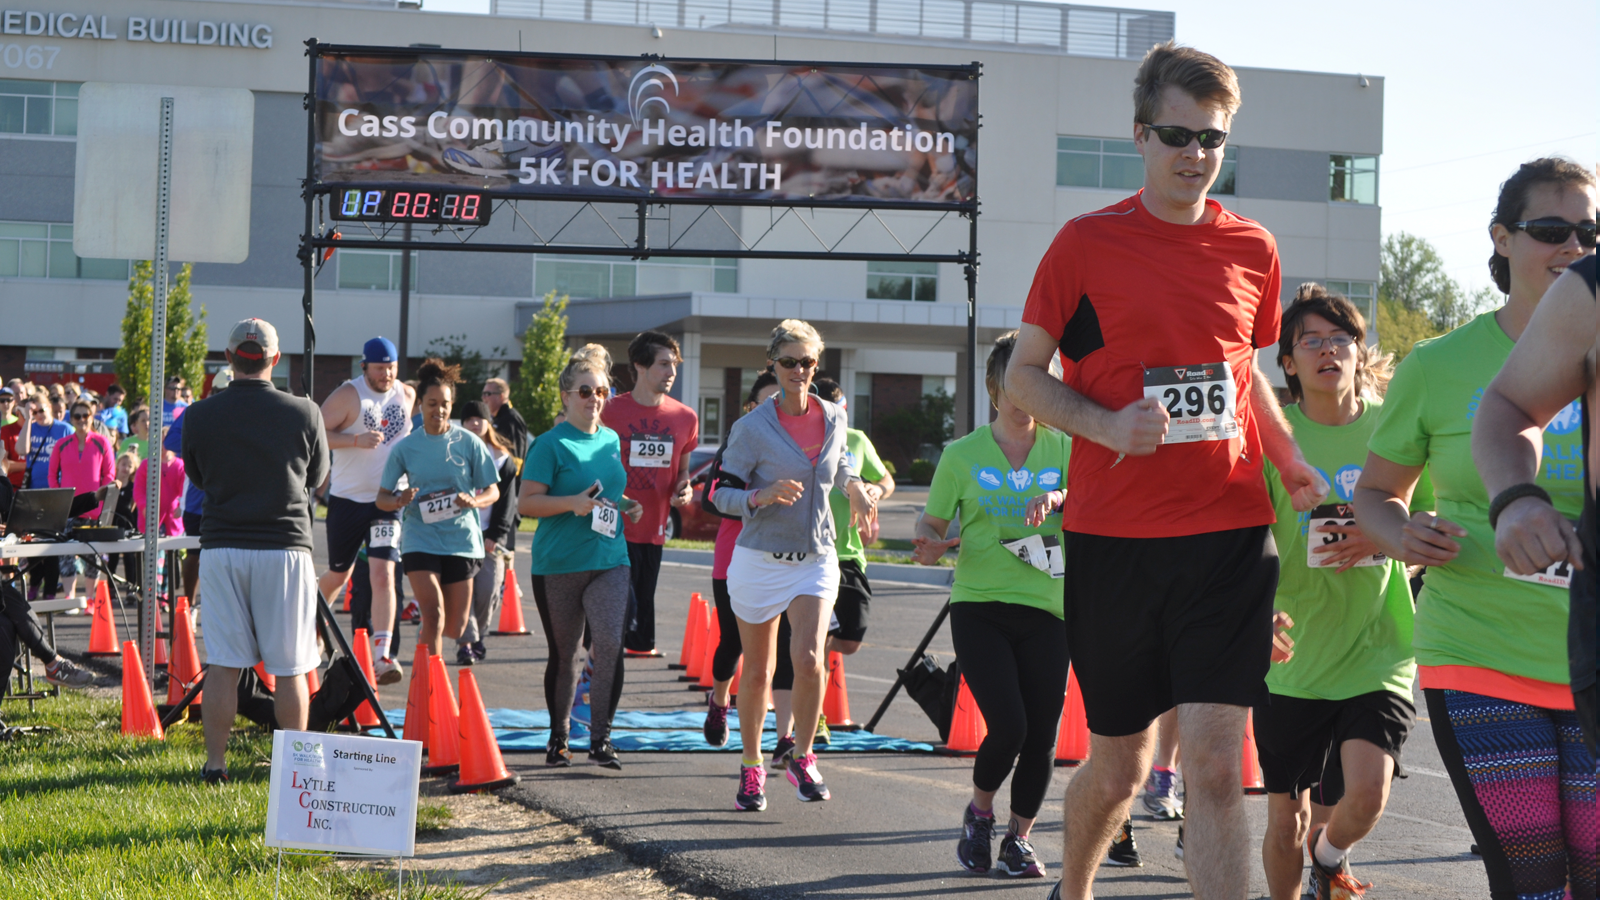 27th Annual 5K for Health encourages help with fundraising goal